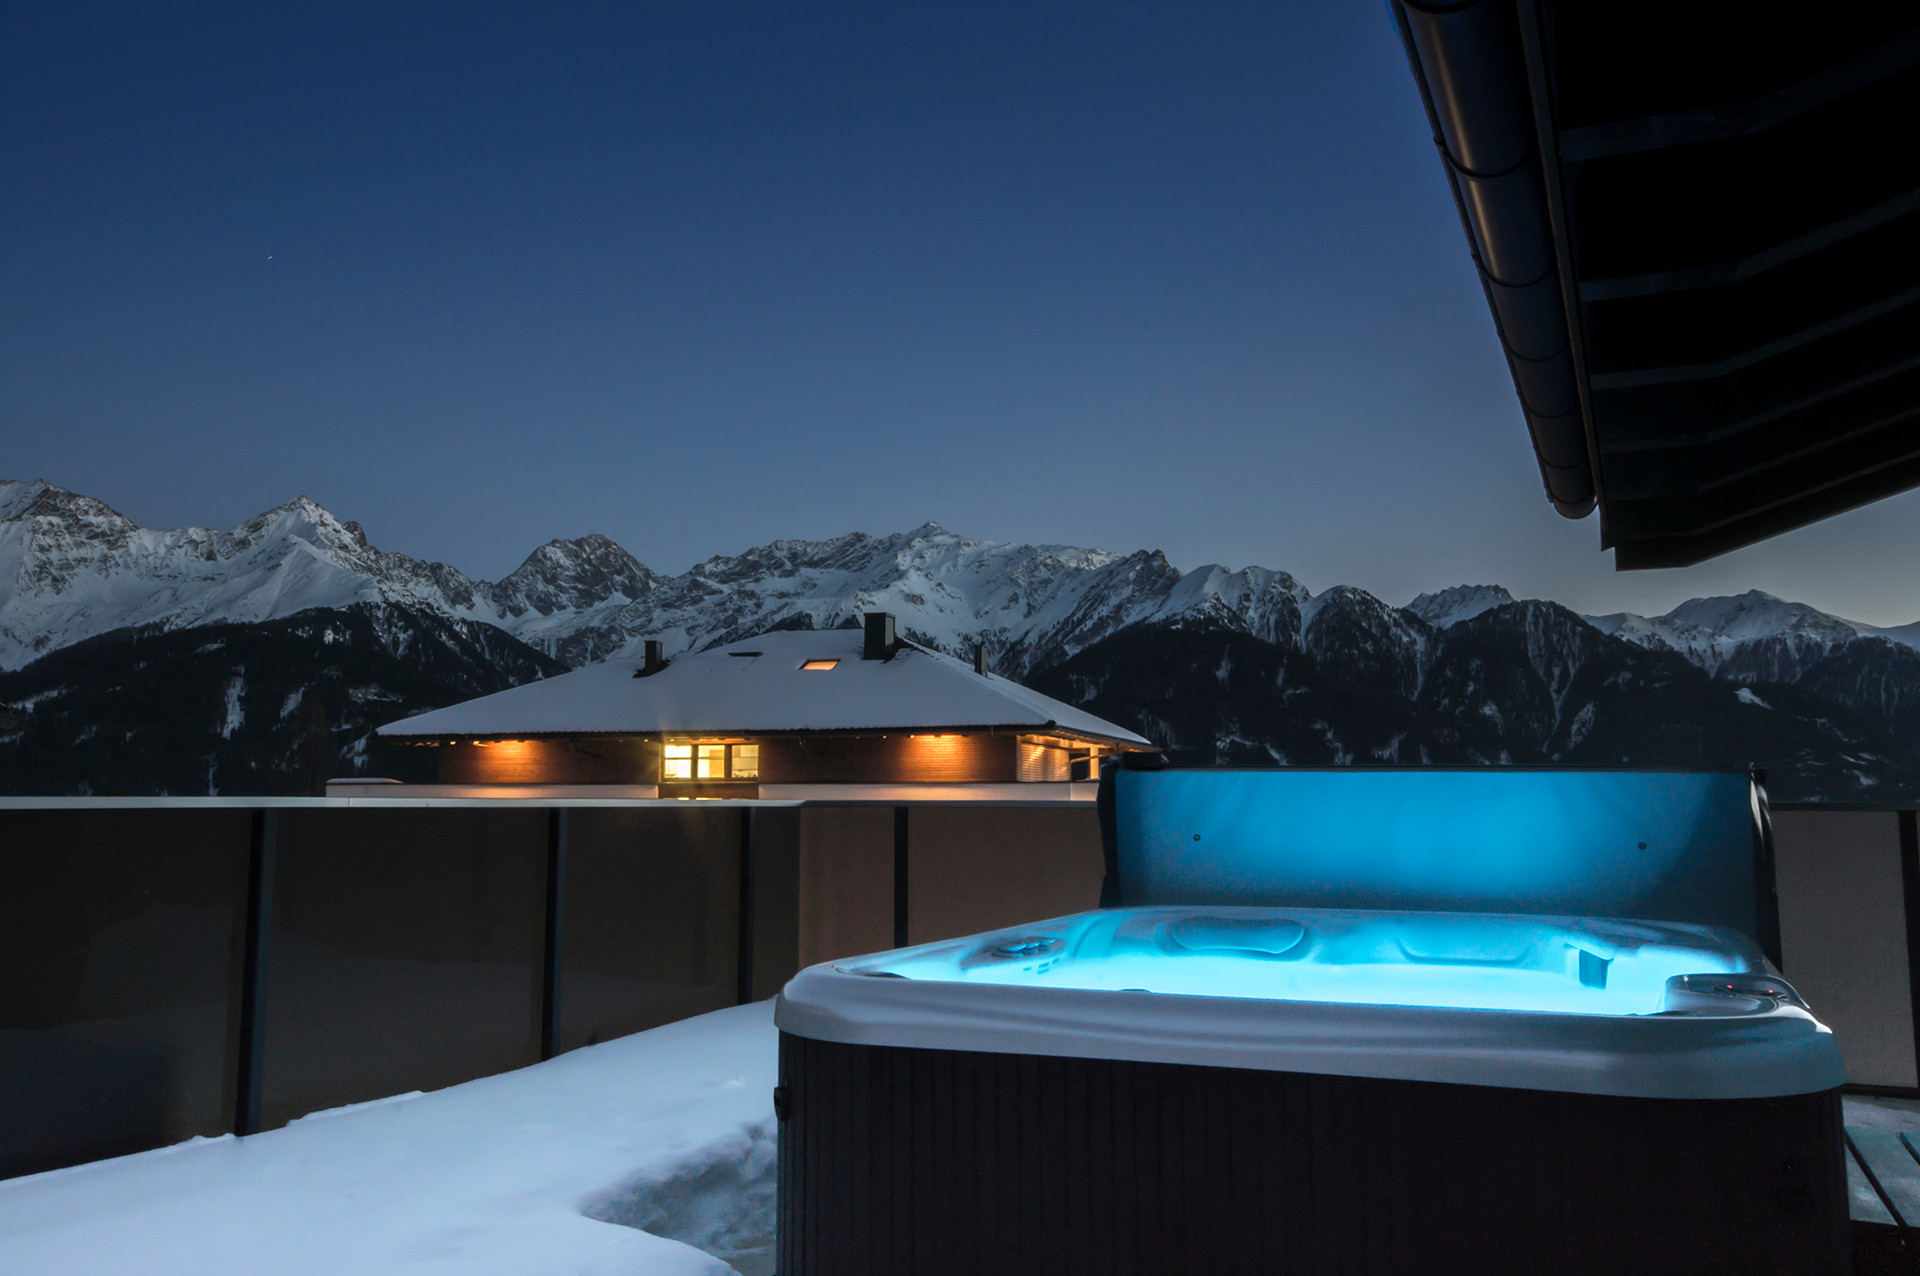 The Snow Is Flying! - Mountain Hot Tub